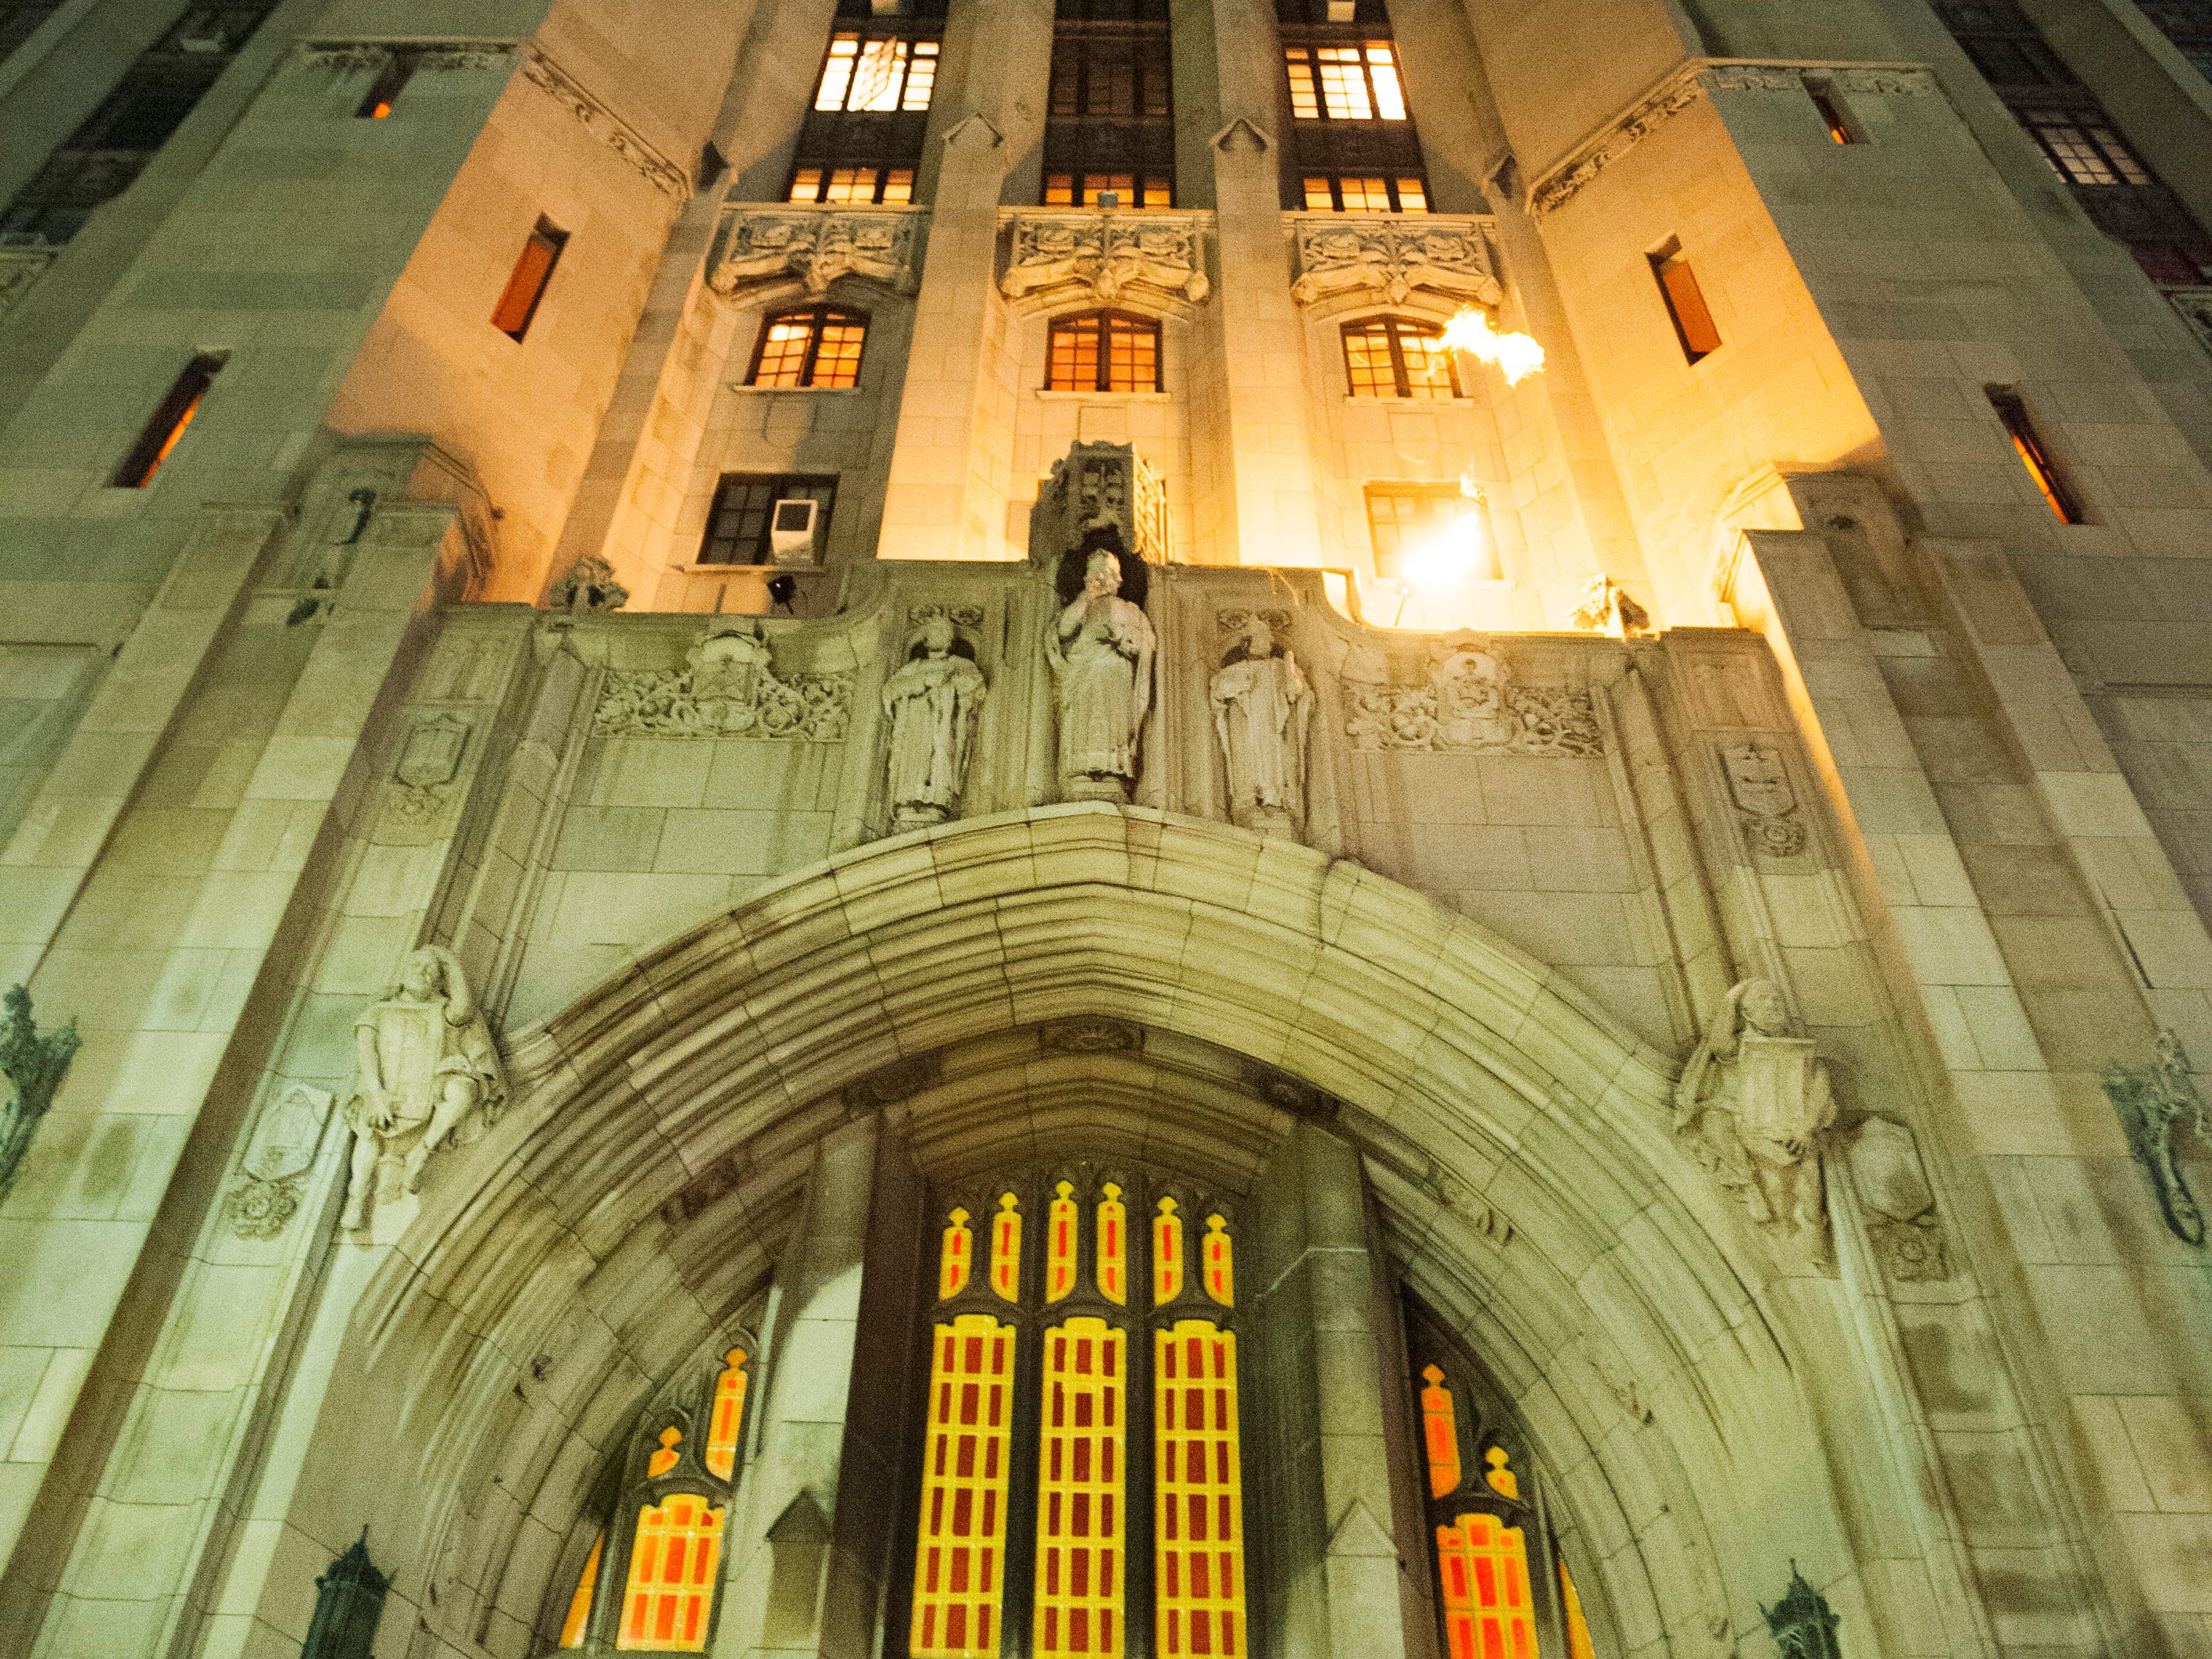 The massive and imposing Masonic Temple hosts Theatre Bizarre on back-to-back October weekends in Detroit the creepy and the curious alike come to revel in 'The Great Deception' on Saturday, October 13, 2018. Theatre Bizarre concludes this weekend with the second Masquerade Gala on Friday the 19th and the final Theatre Bizarre party on Saturday the 20th. For more information check out www.theatrebizarre.com.